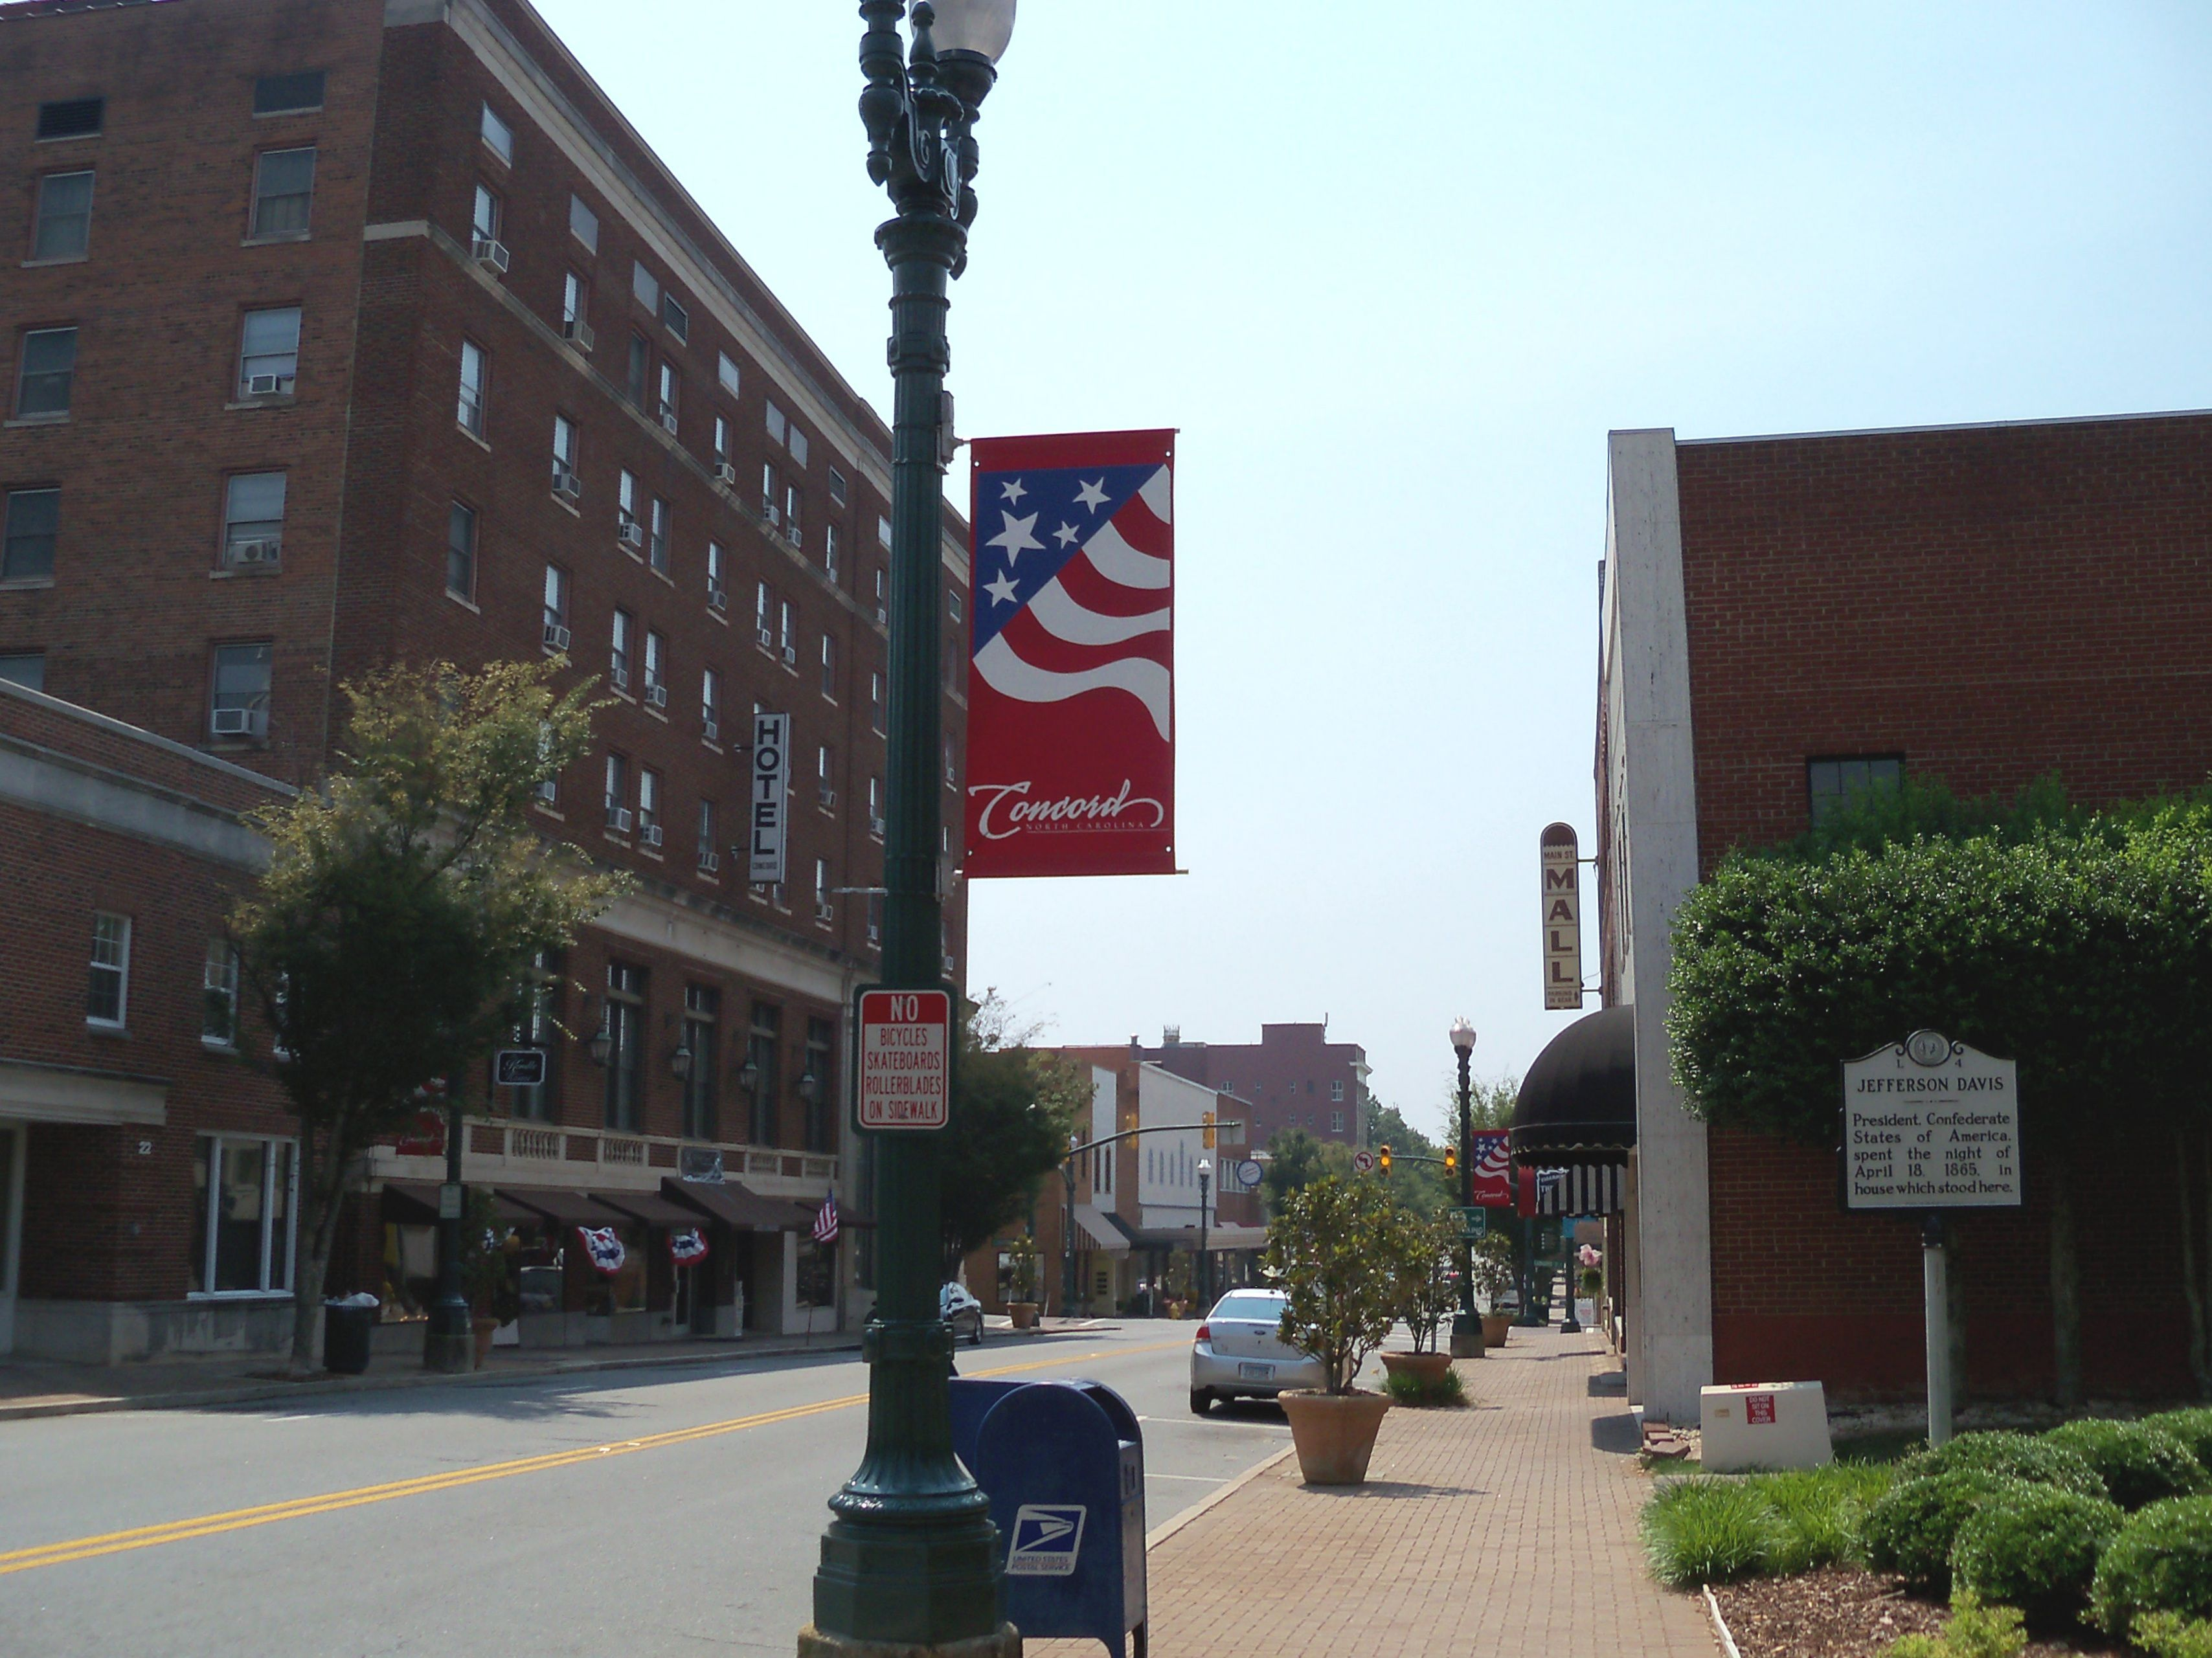 Street in downtown Concord, North Carolina